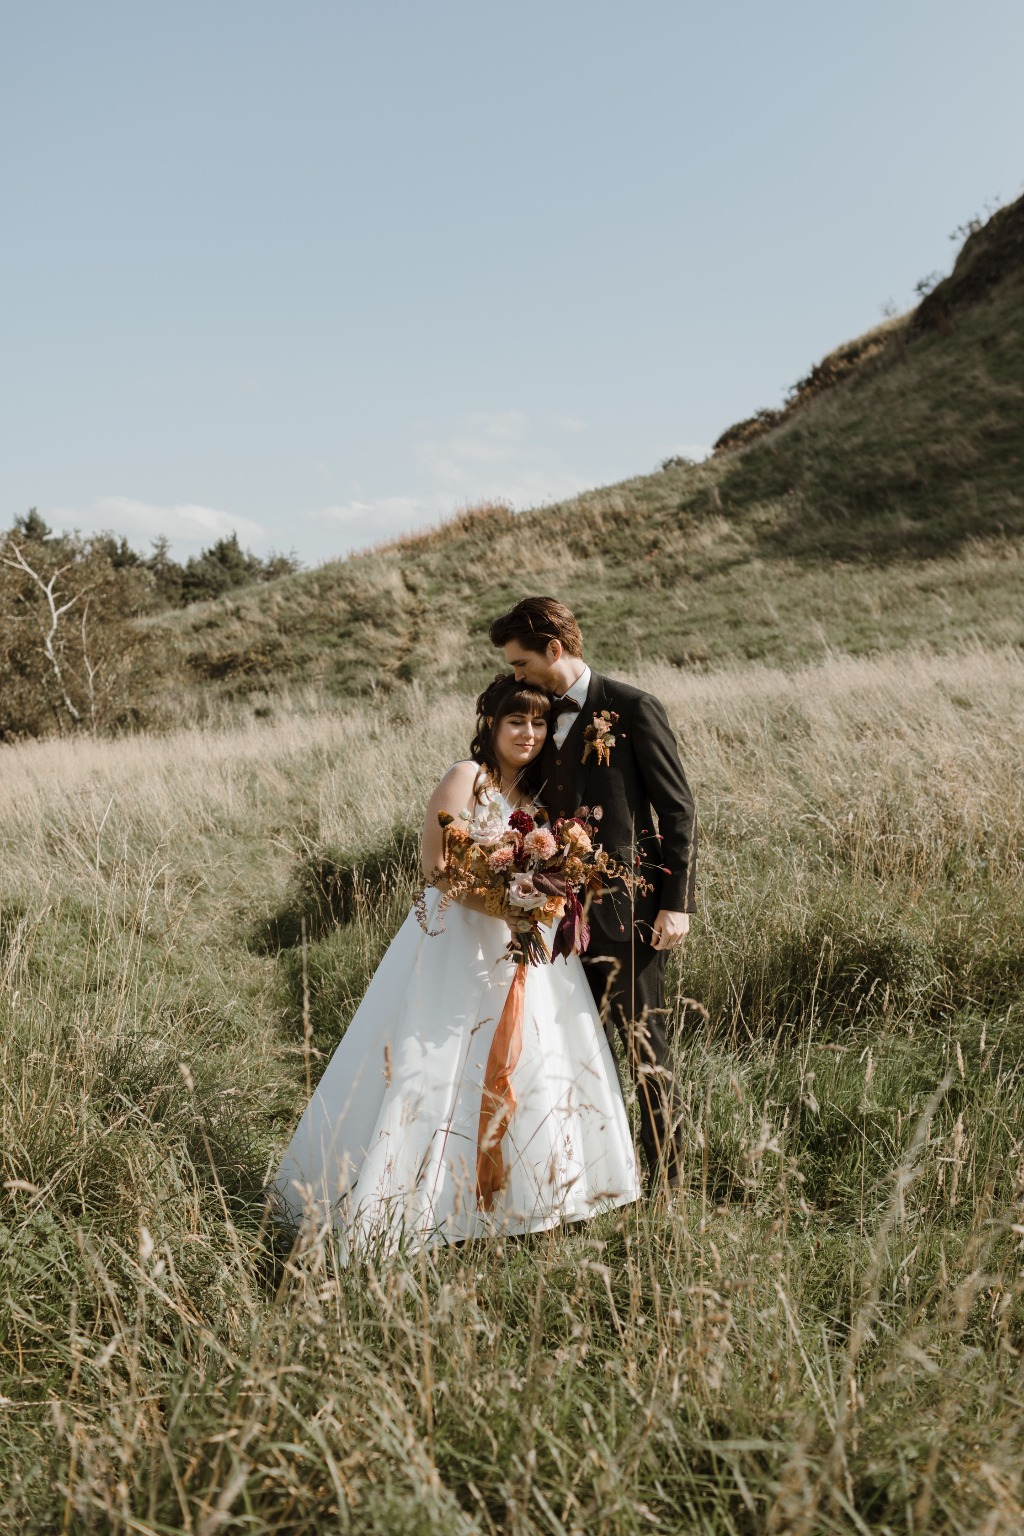 Elopement in Edinburgh. Dress: Astrid & Mercedes Joy via the flagship Toronto bridal boutique | photography: Caro Weiss | day-of